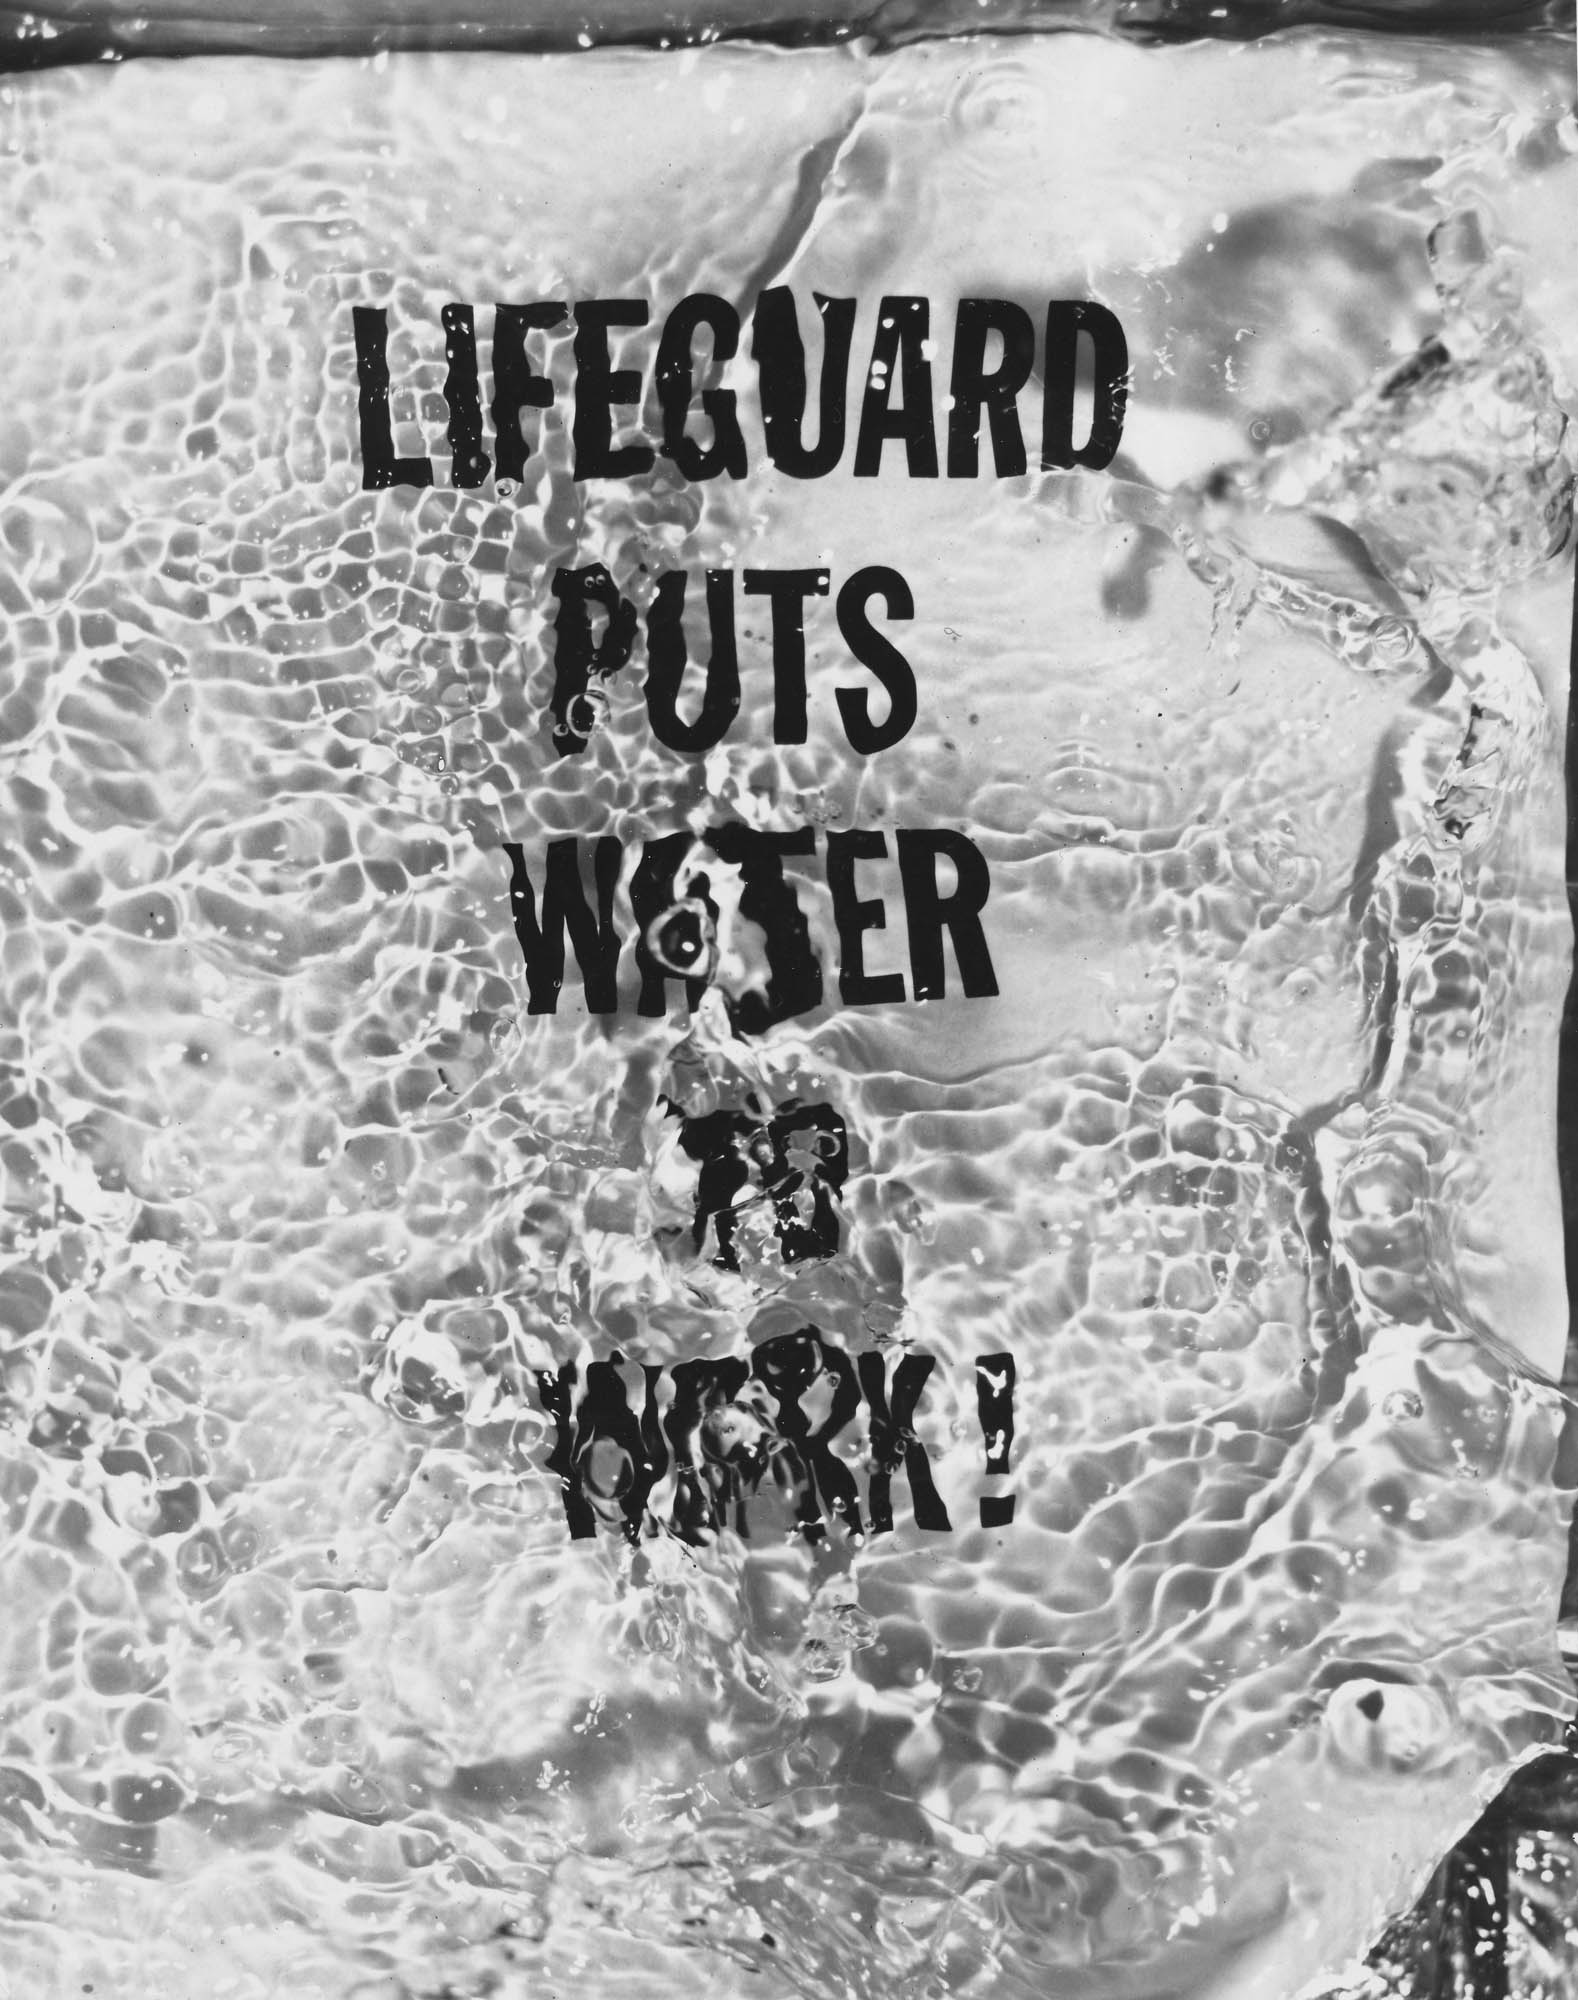 Lifeguard Disinfectant - Print Ad London 1964